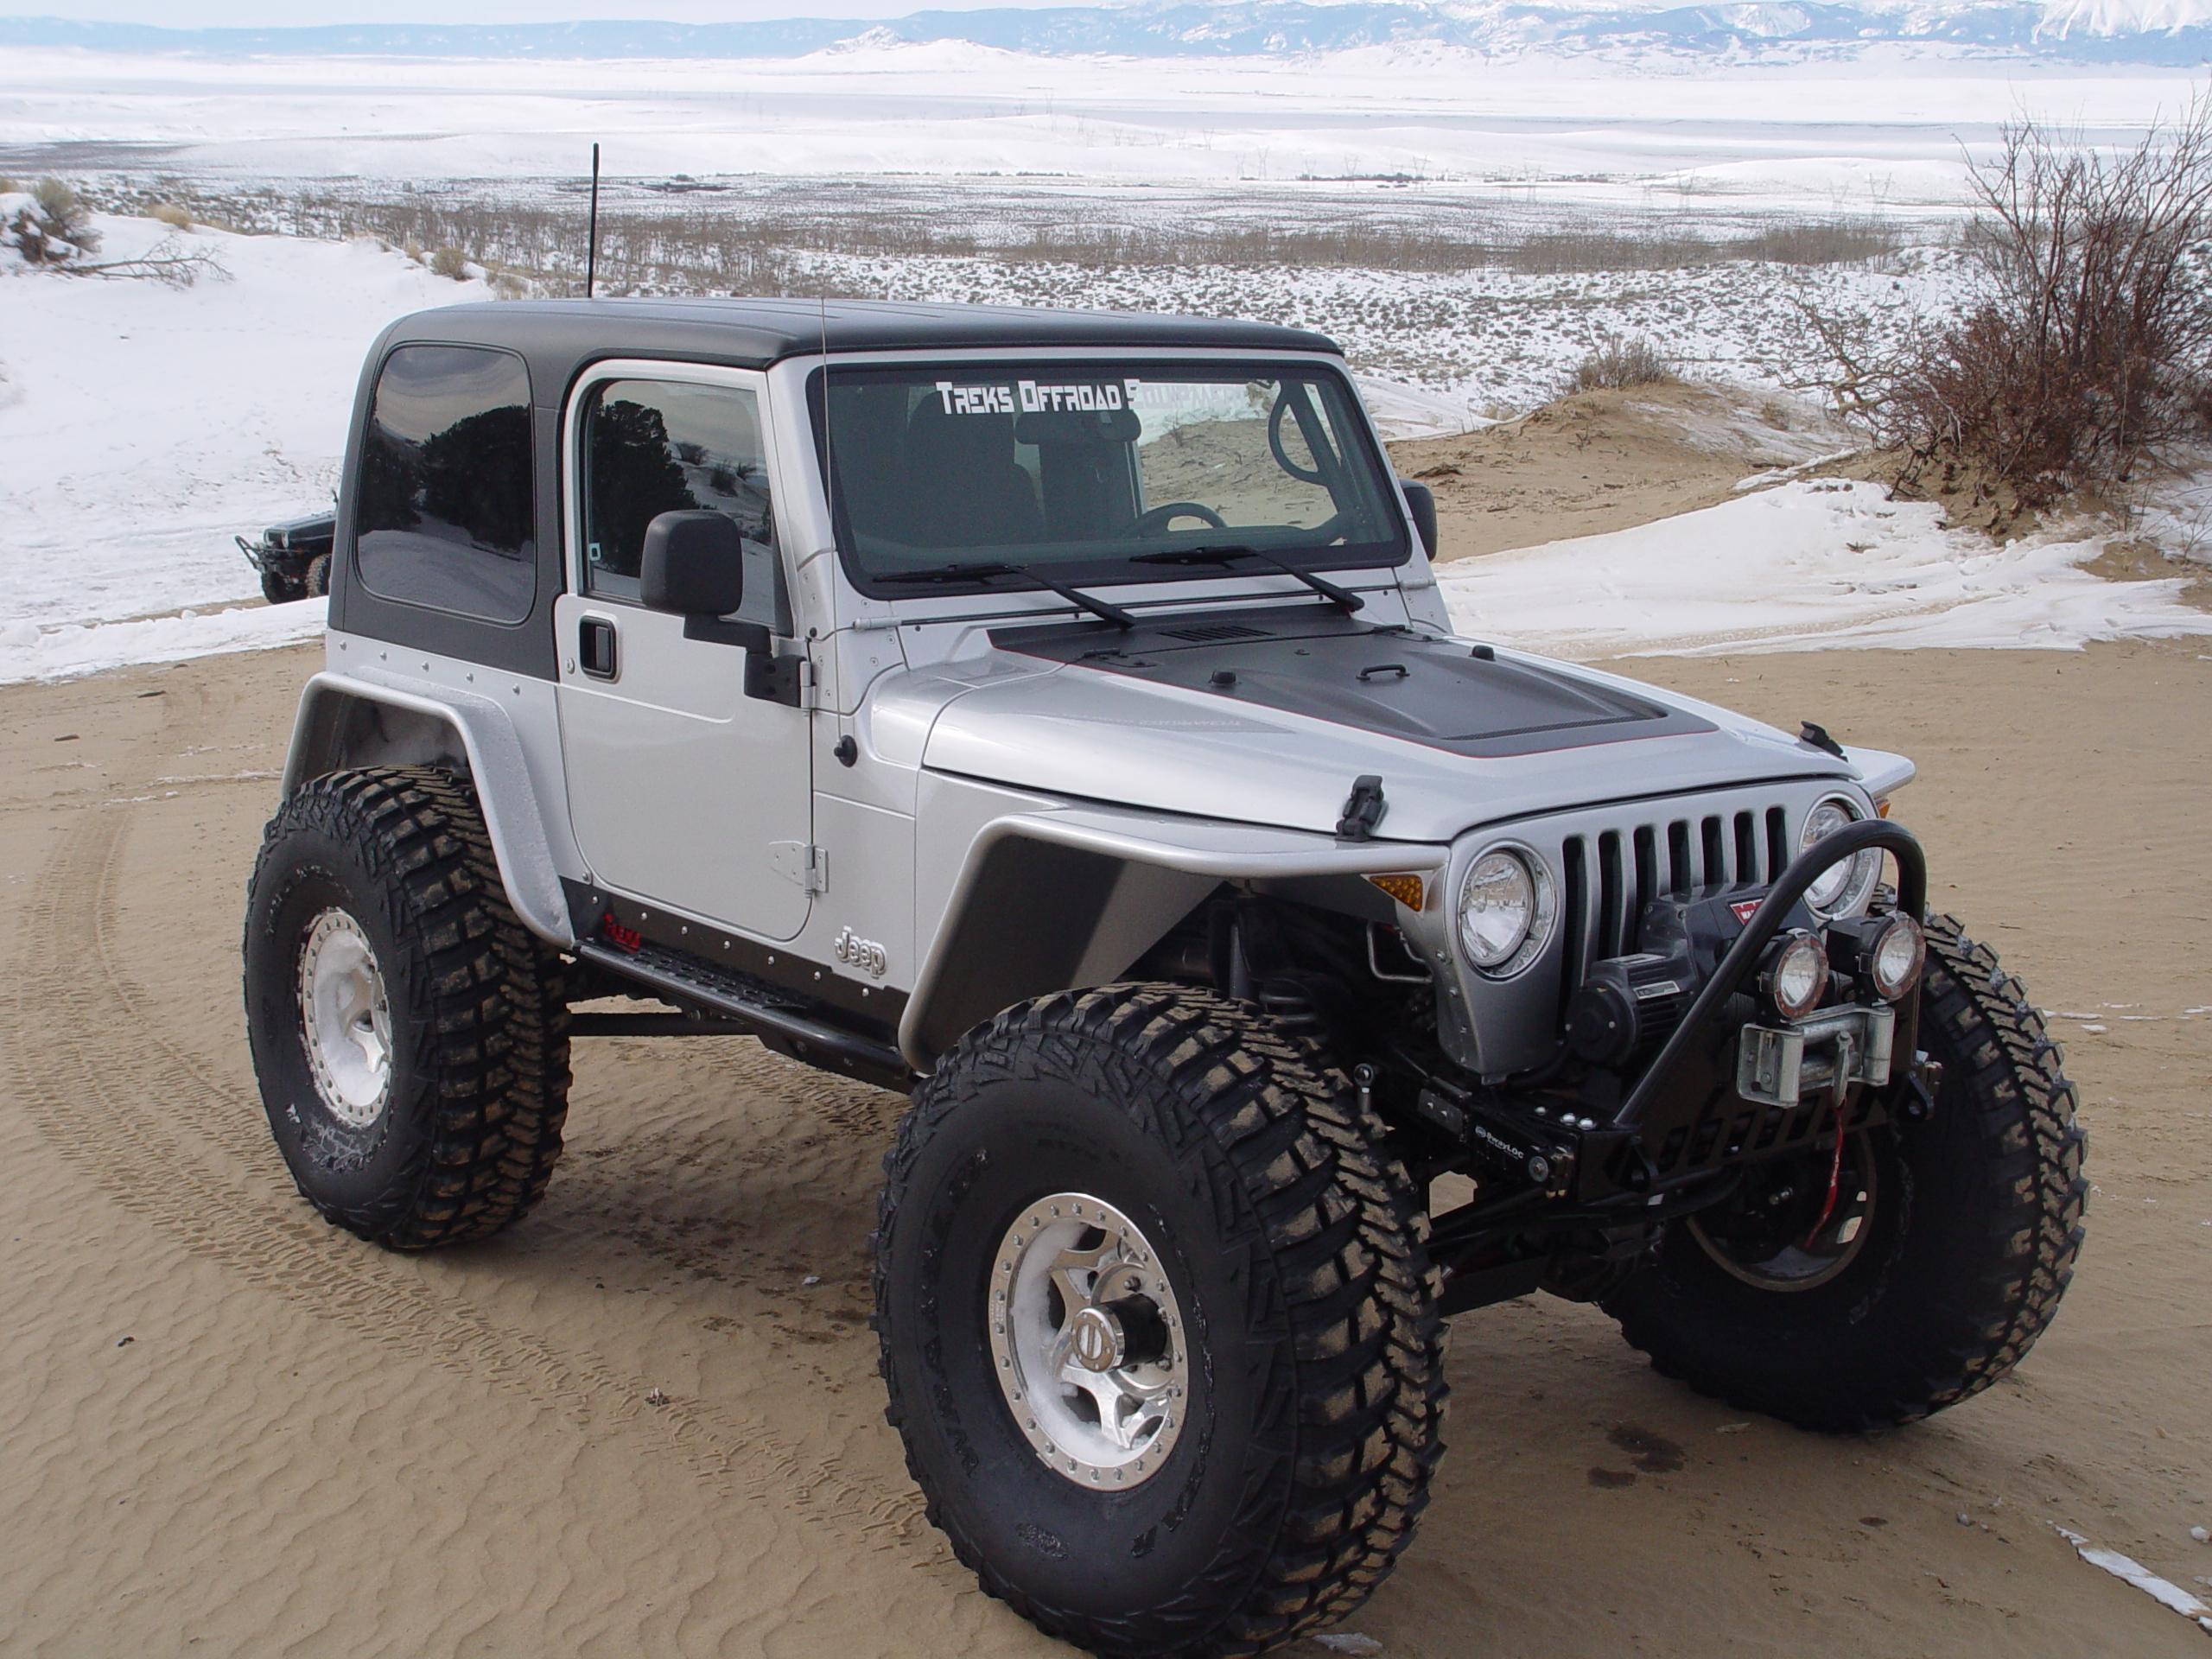 Jeep Tj Tube Fenders 45 Inch Flare High Clearance 97 06 Wrangler Jk With 37 Tires Tnt Front View